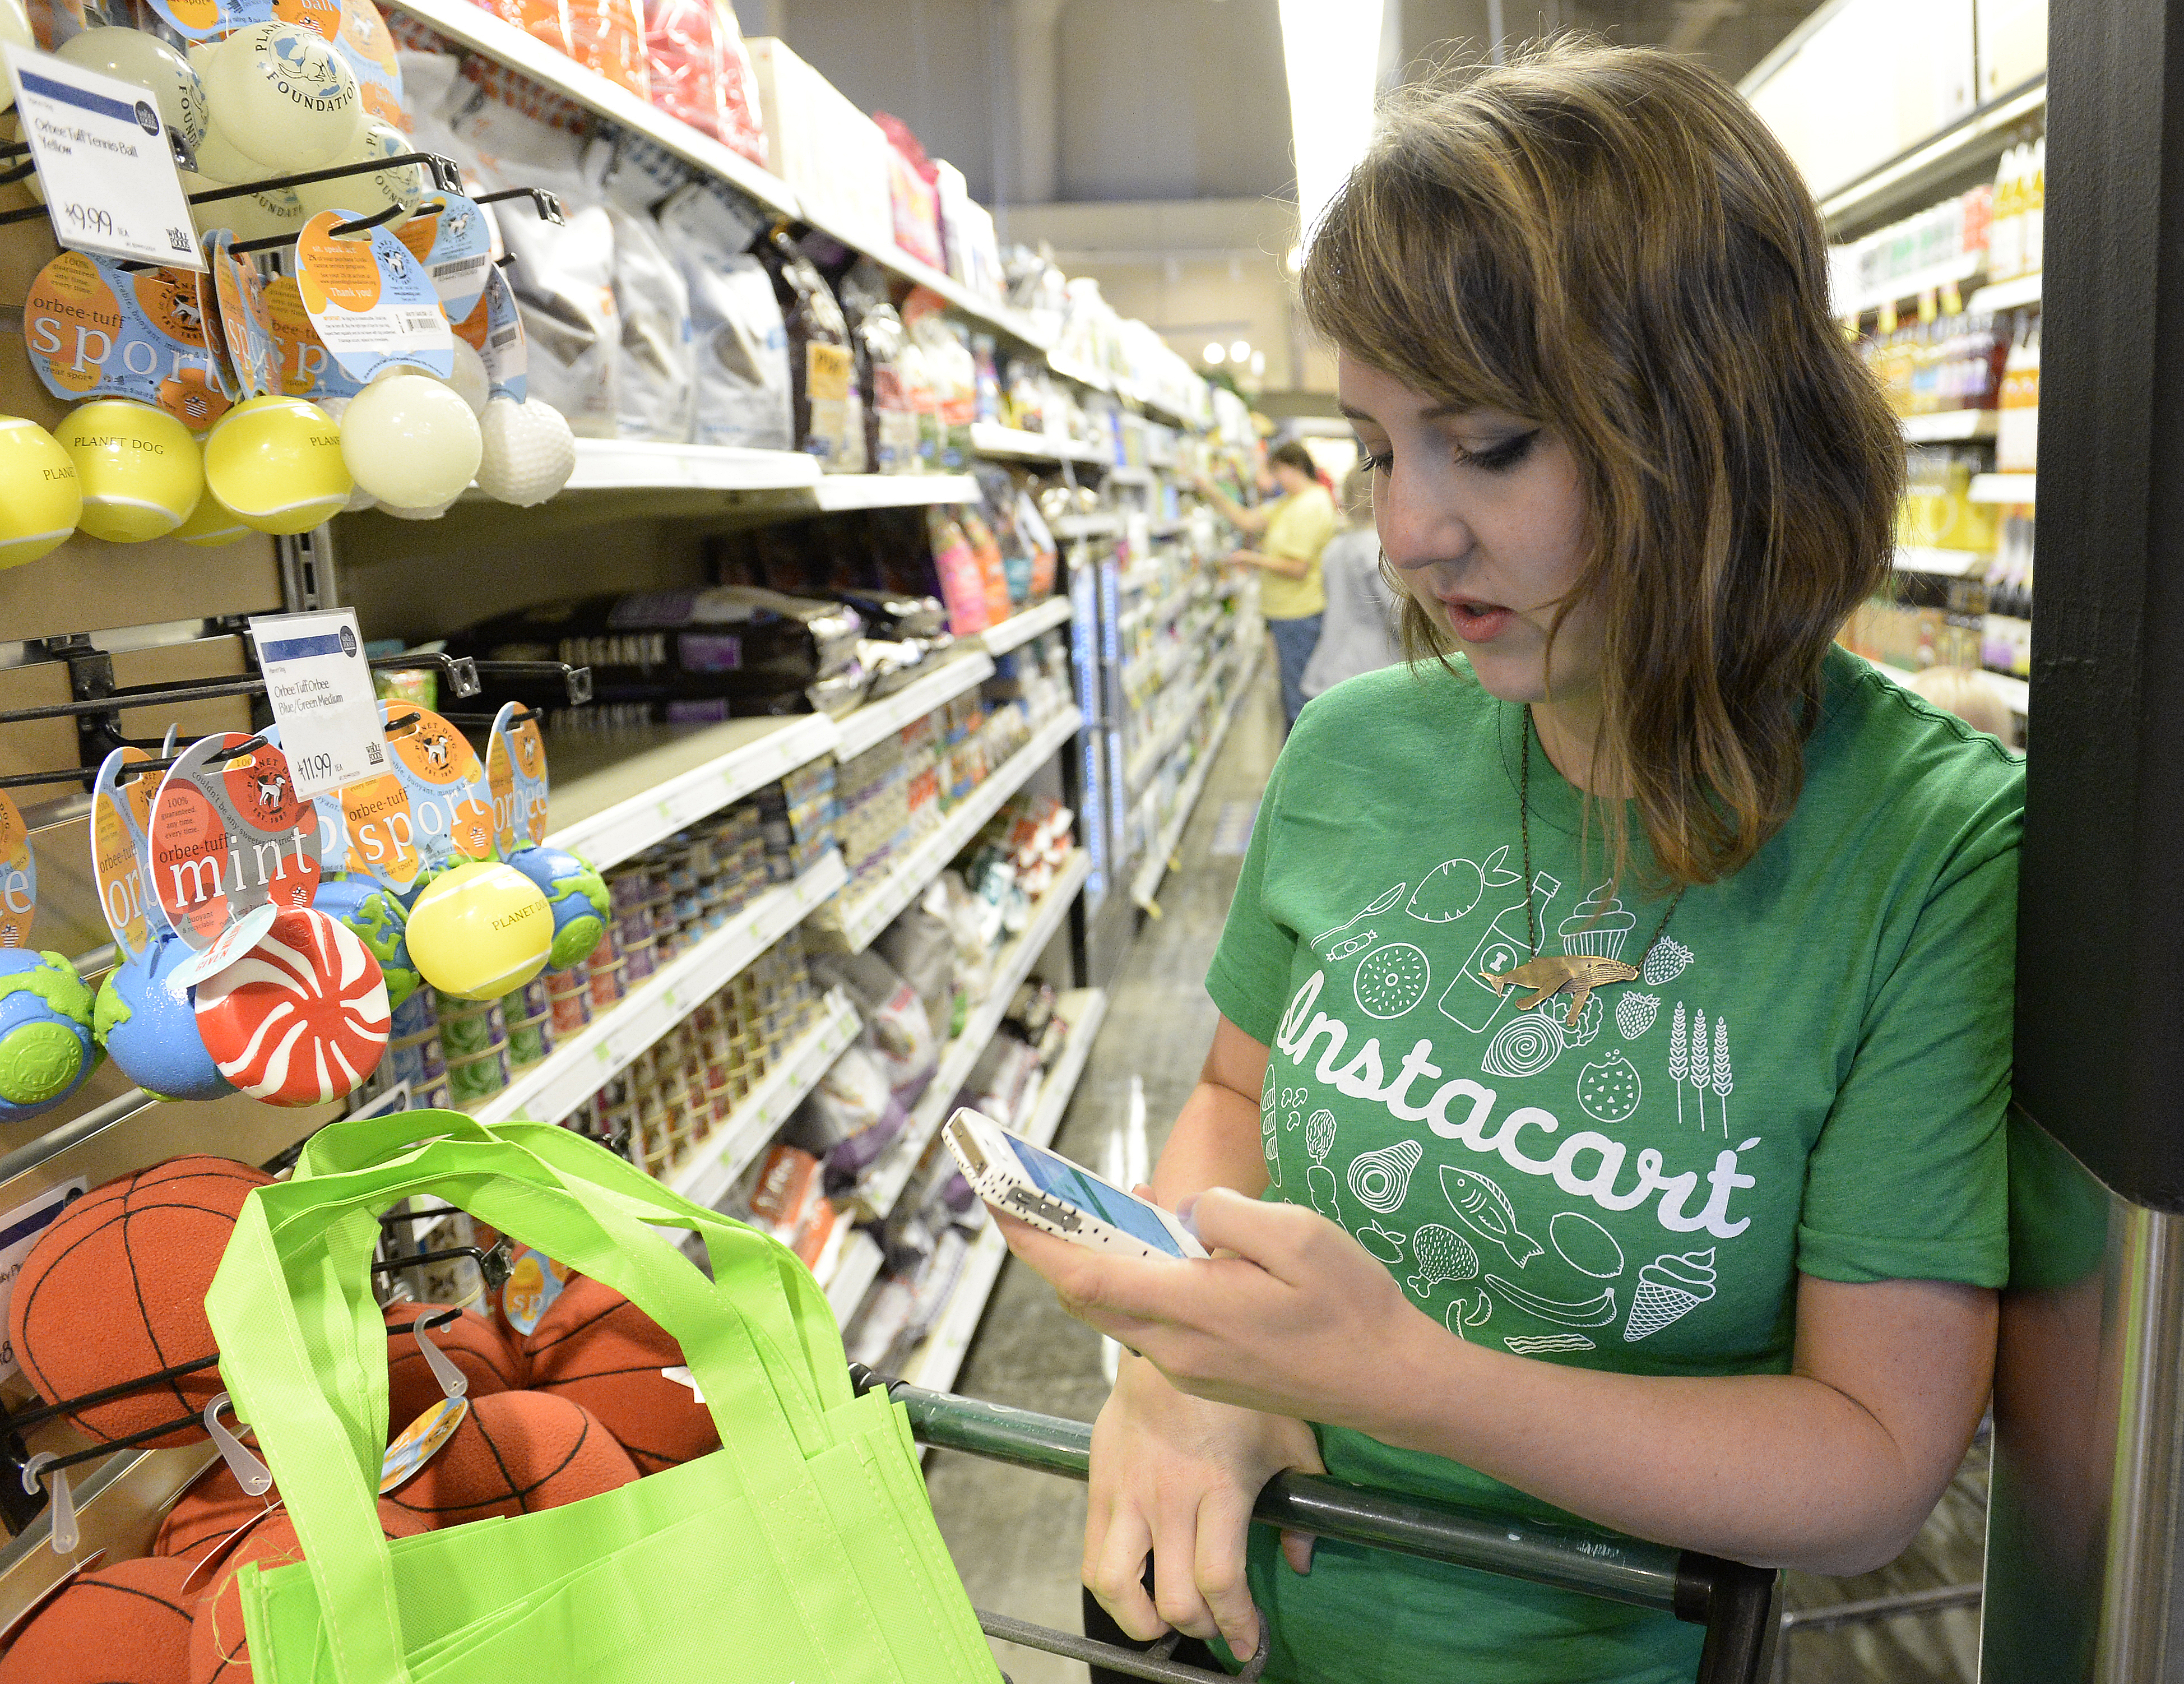 Two Days After Its Shoppers Went on Strike, Instacart Eliminated Their Bonuses